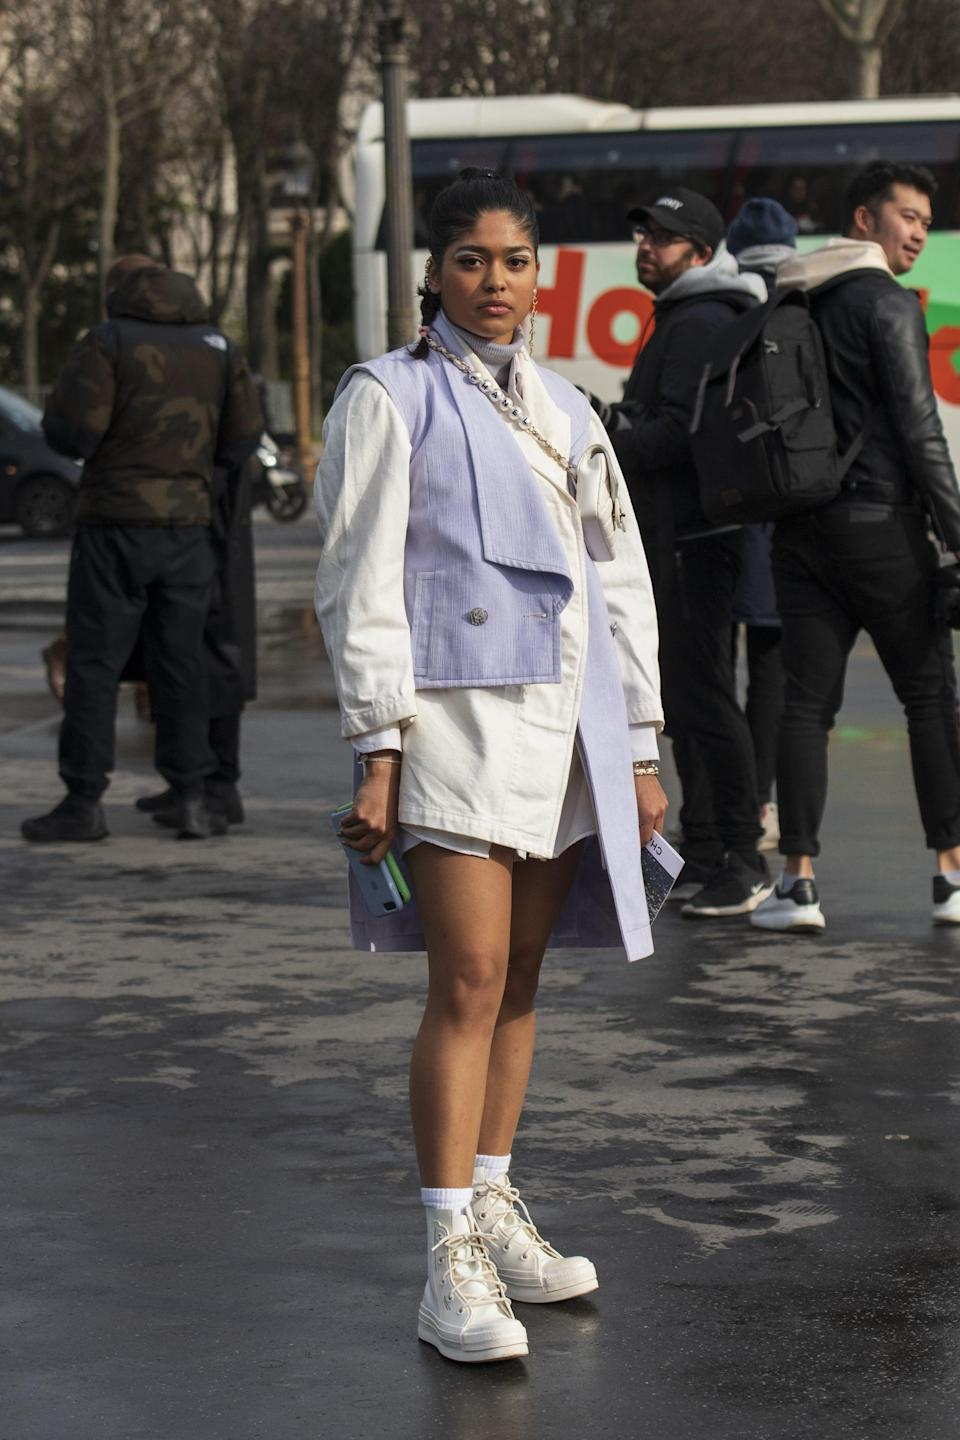 <p>With everyone's love of nostalgia going strong, it's only natural that high-top kicks still reign supreme. Whether you like the classic Nike Jordan look or Converse's Chucks, there are plenty of new picks that feel fresh. </p>